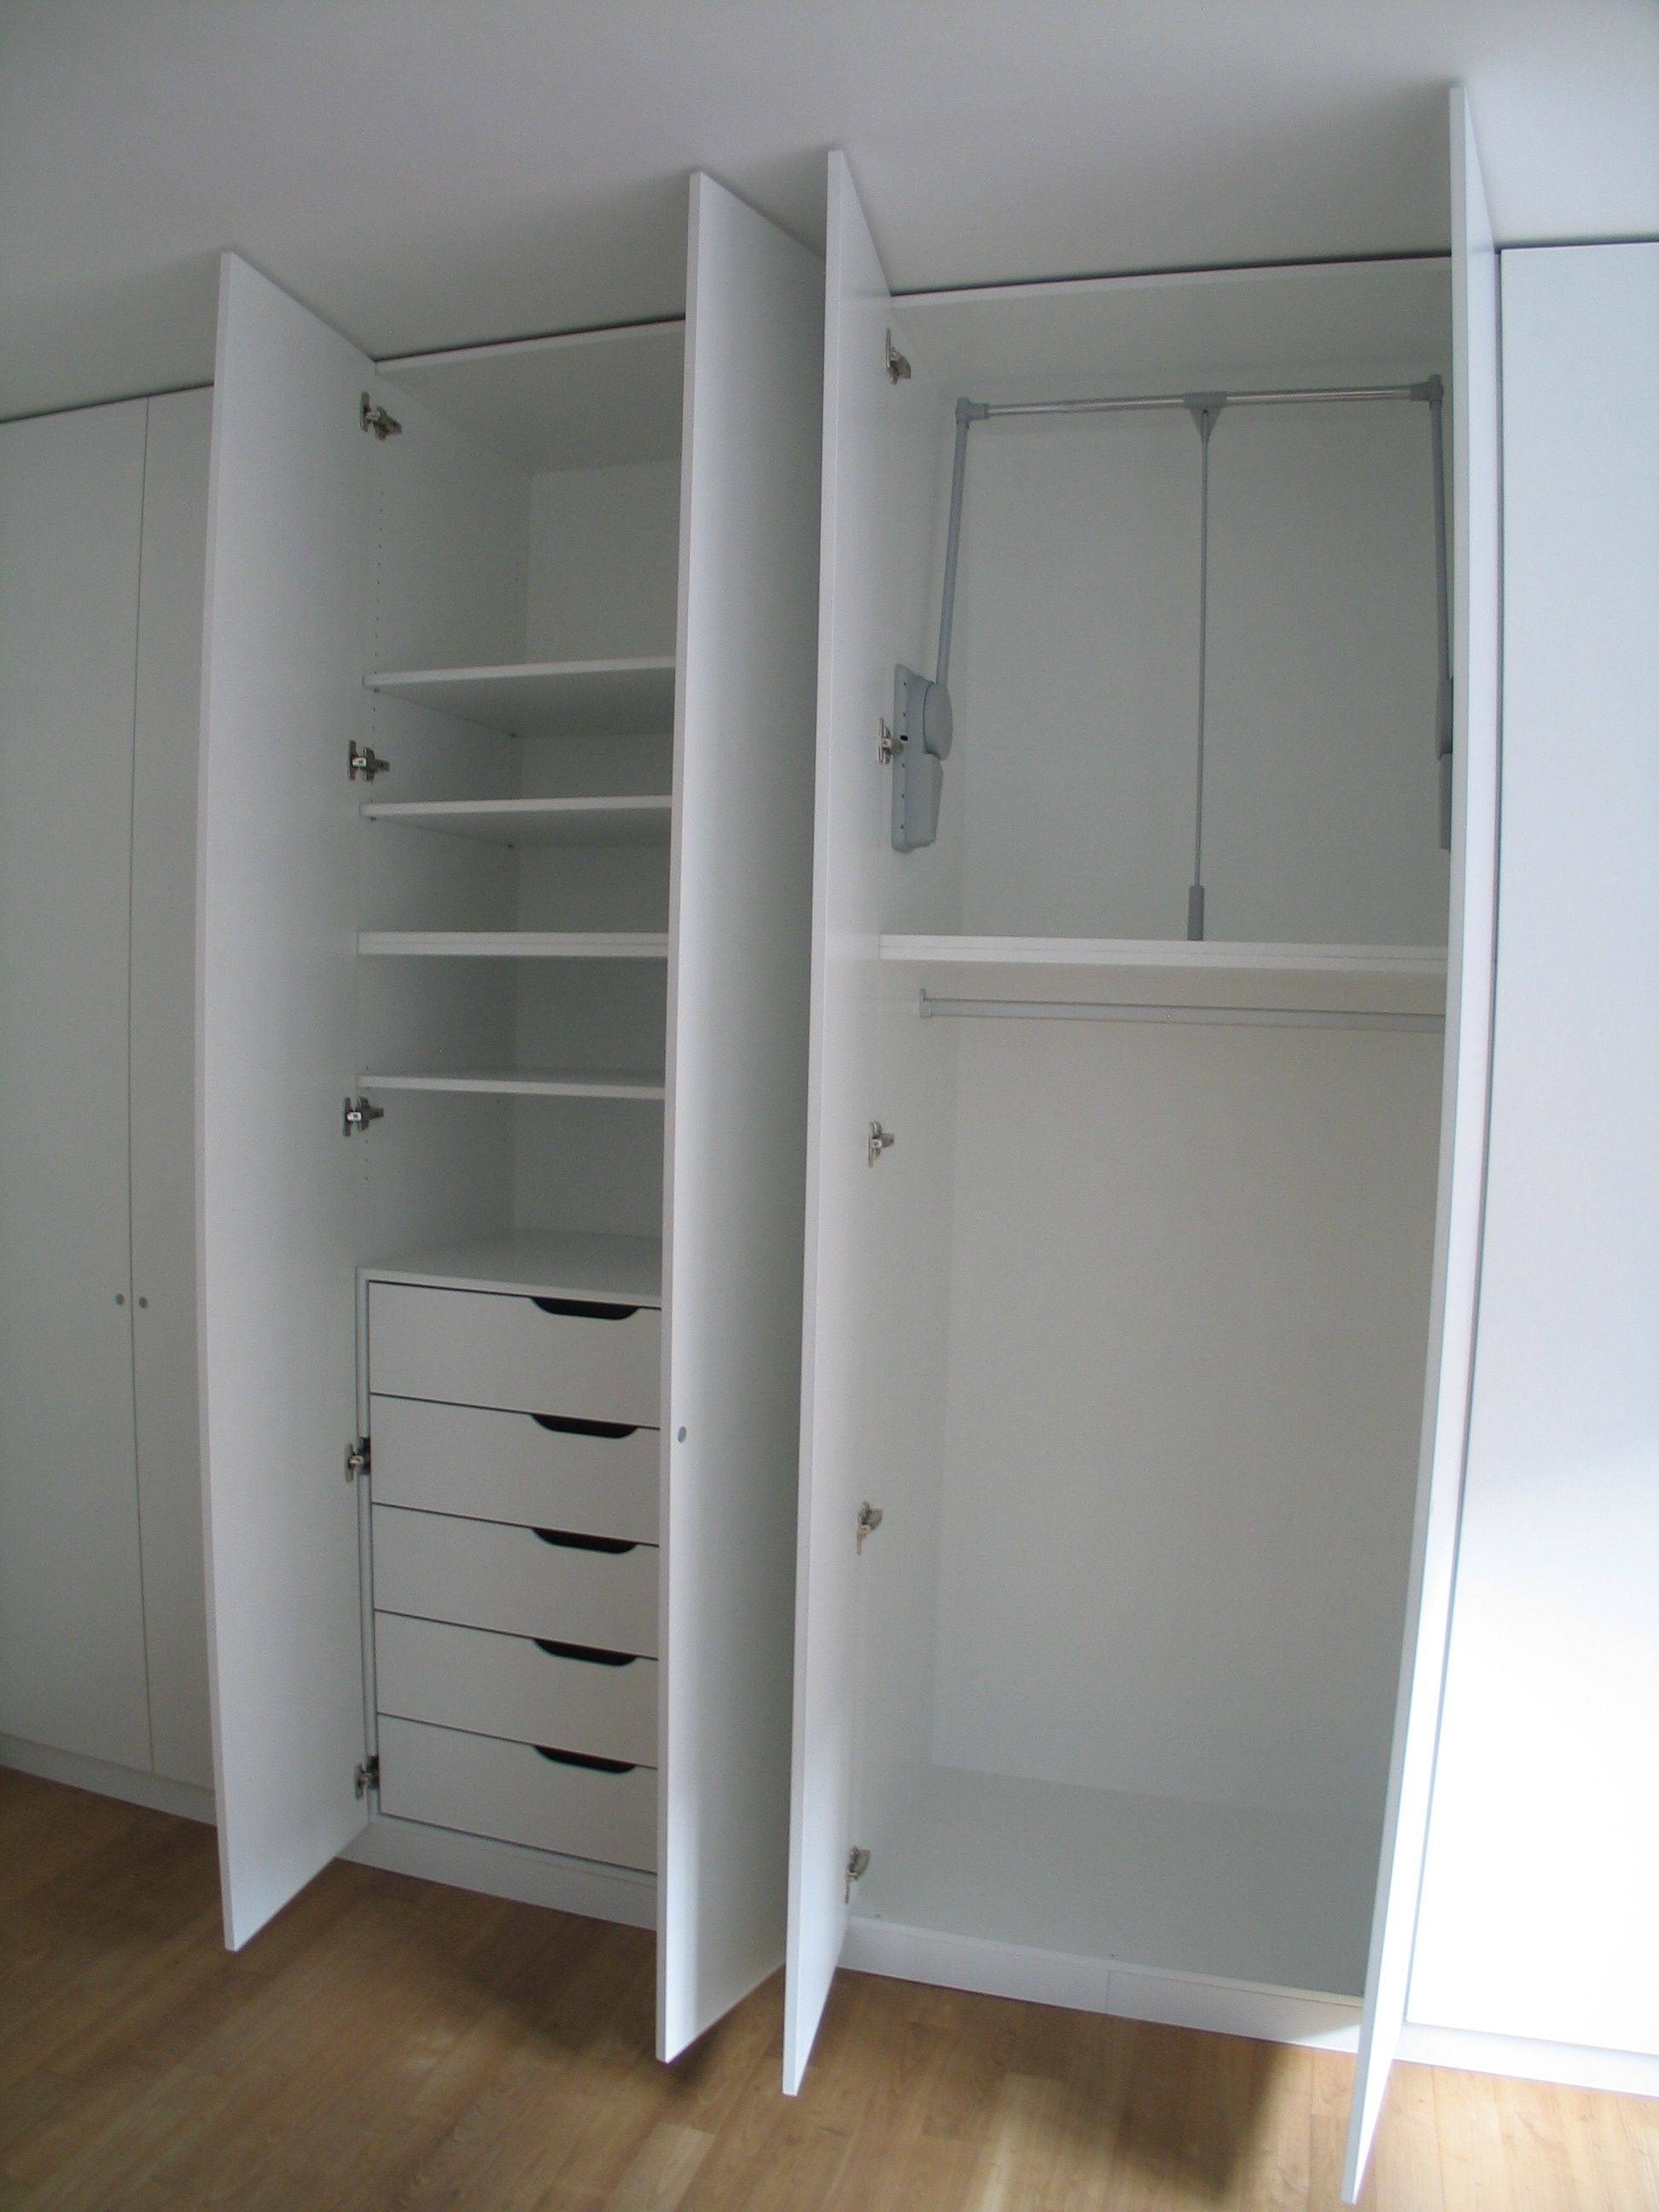 Stylish Design Double Wardrobe With Drawers And Shelves Oliver In Most Recent Wardrobes With Drawers And Shelves (View 10 of 15)